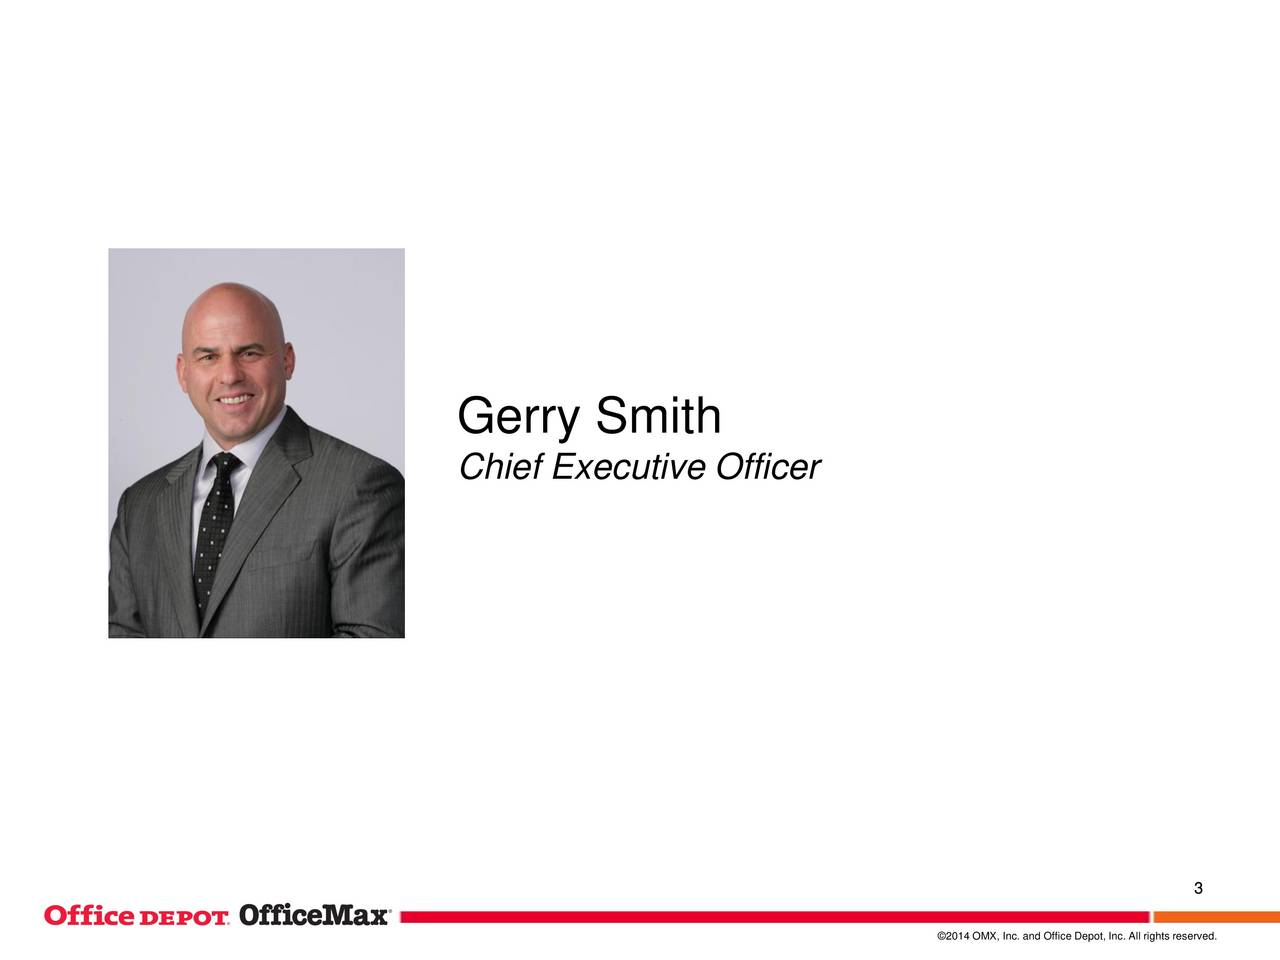 Chief Executive Officer 3 2014 OMX, Inc. and Office Depot, Inc. All rights reserved.